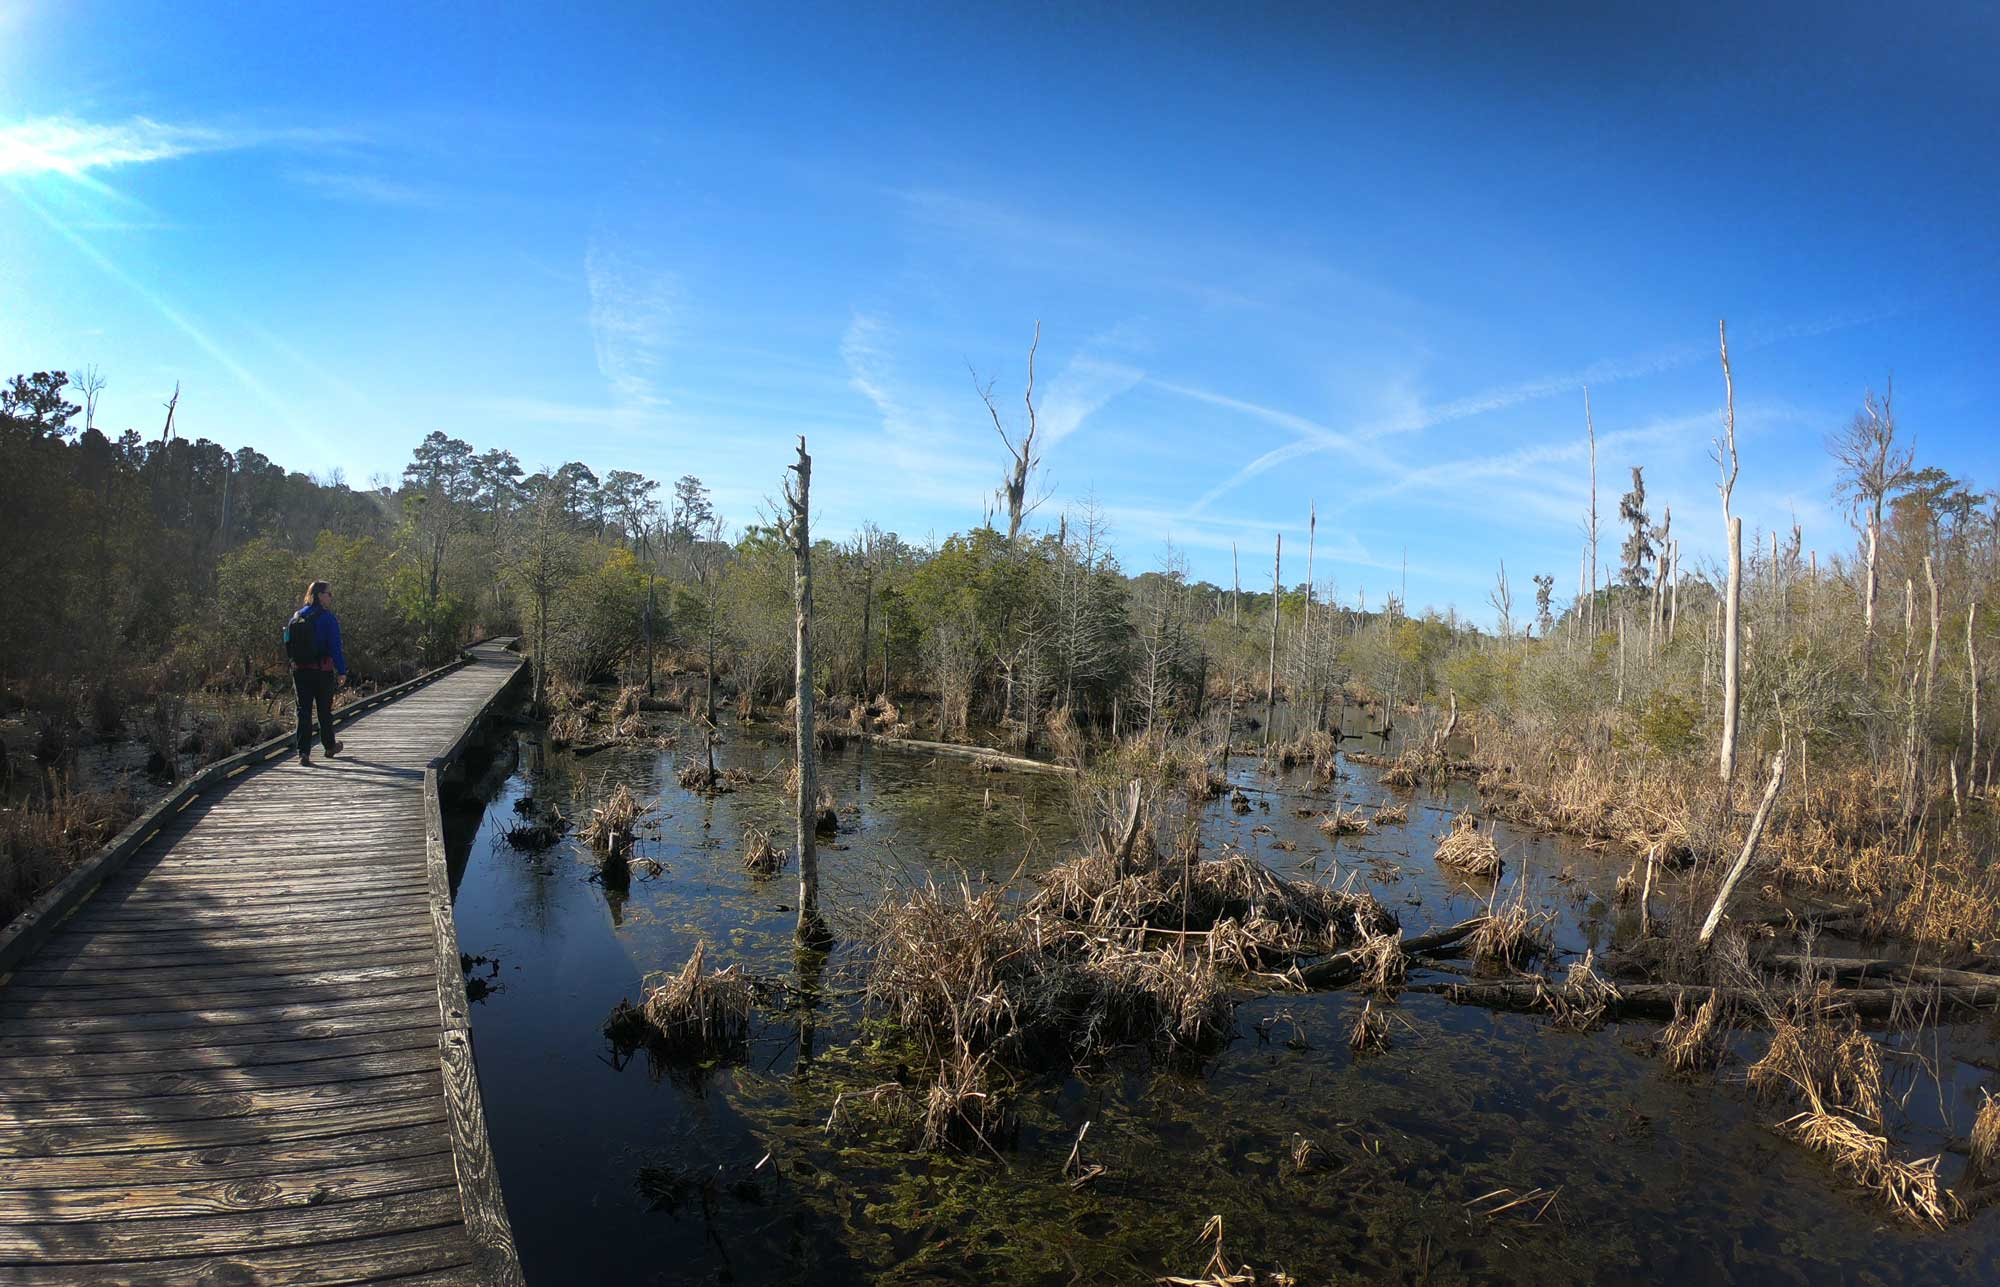 Hiker on Goose Creek State Park Palmetto Boardwalk walking through marsh